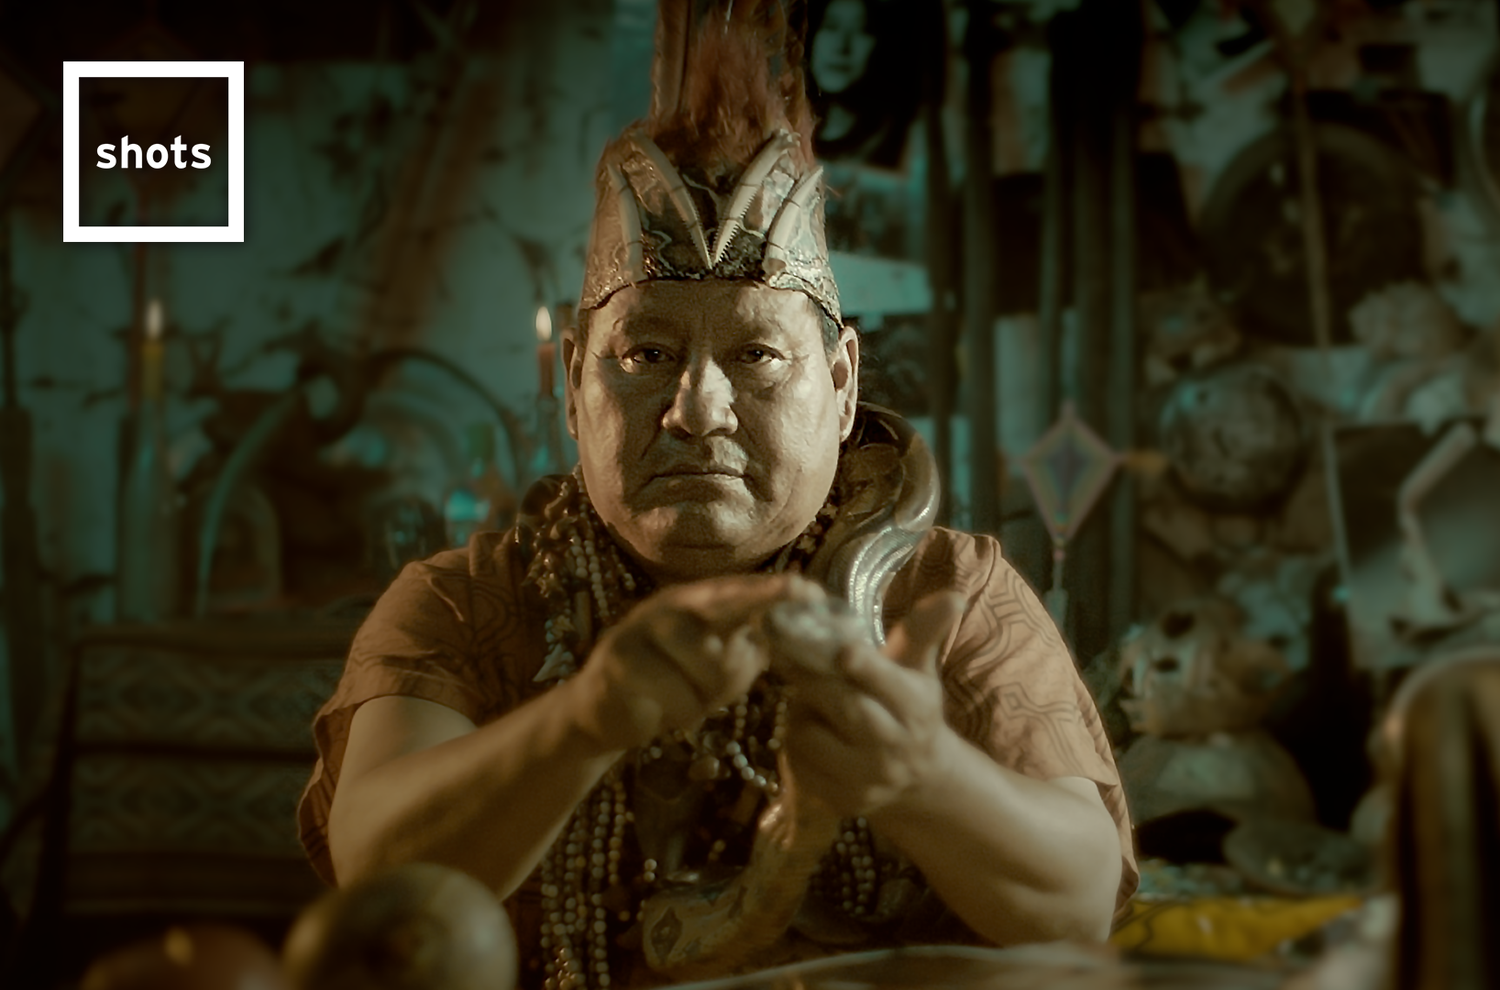 The One Show launches with shaman-power - To promote today's call for entries to The One Show 2020, the advertising awards body is offering the services of a real Peruvian shaman to bless creative work.